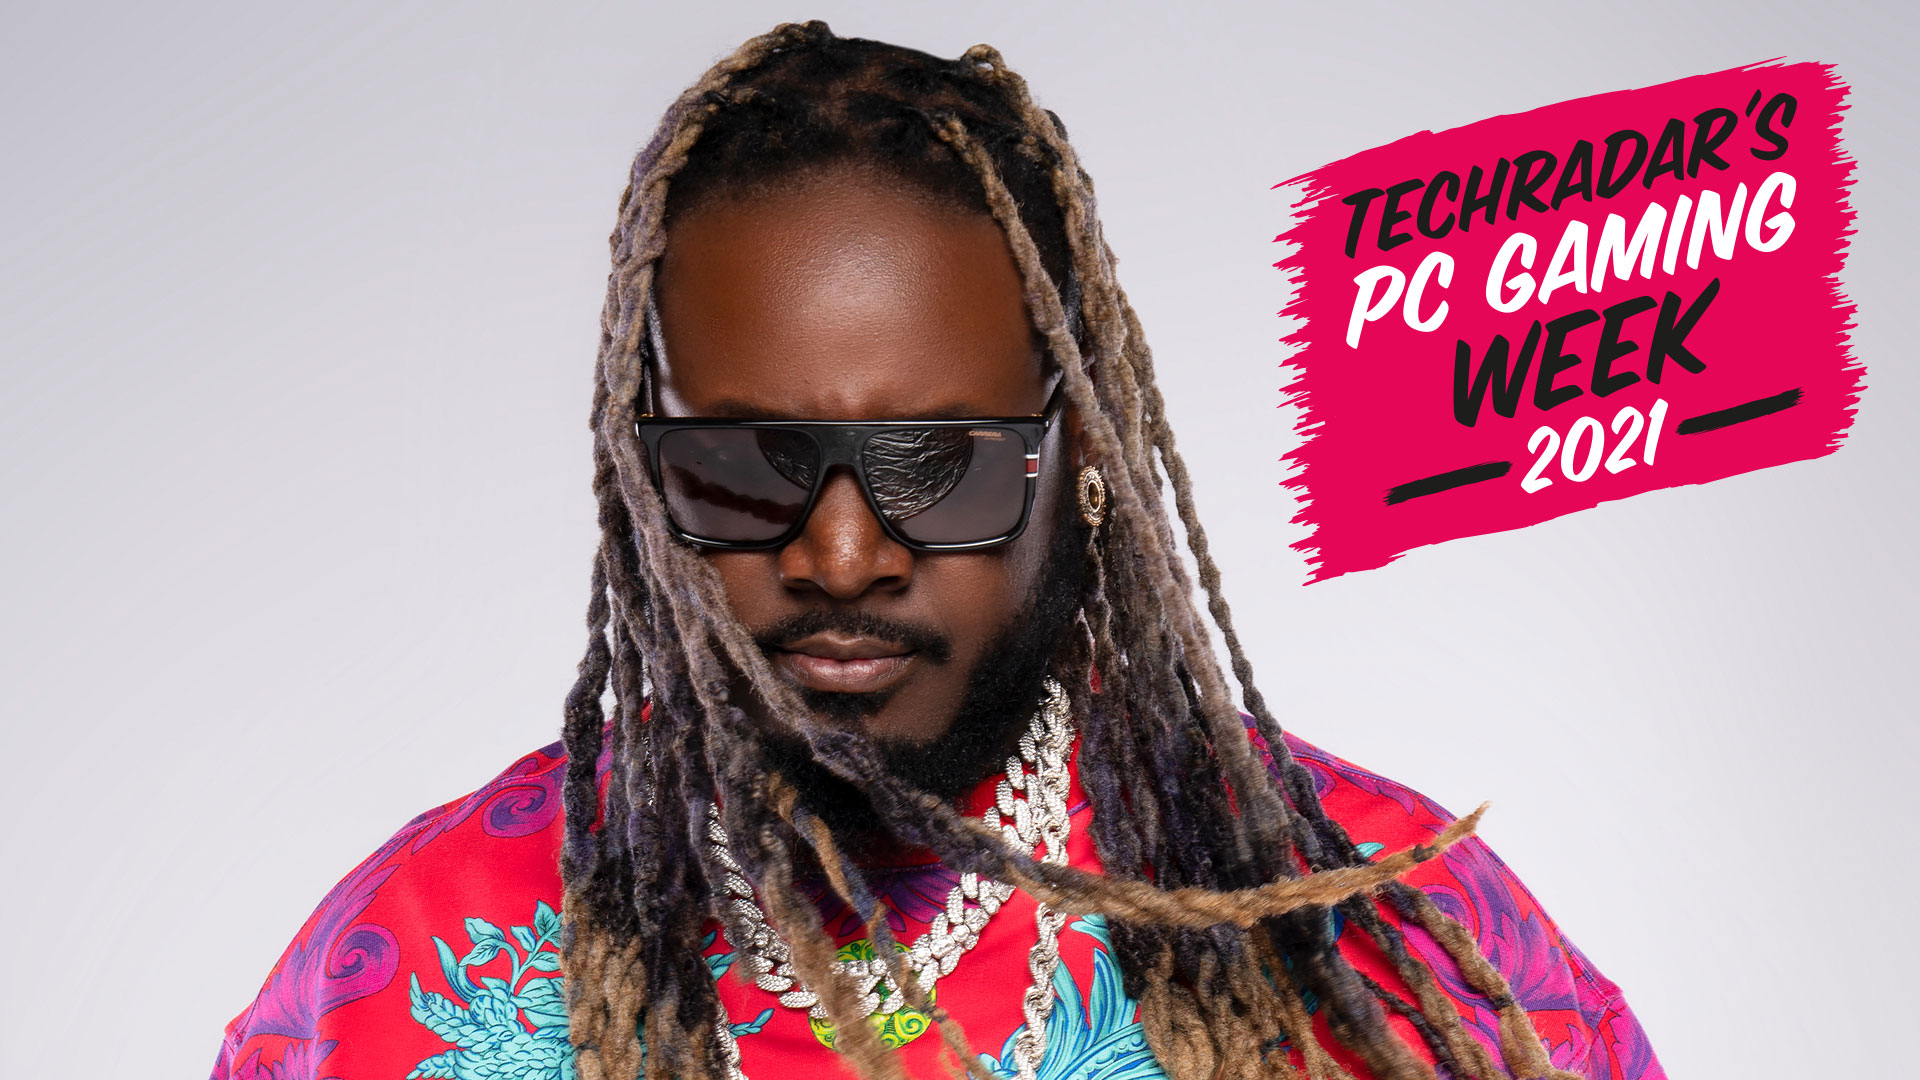 T-Pain on a white background with the PC Gaming Week 2021 logo in the top right corner